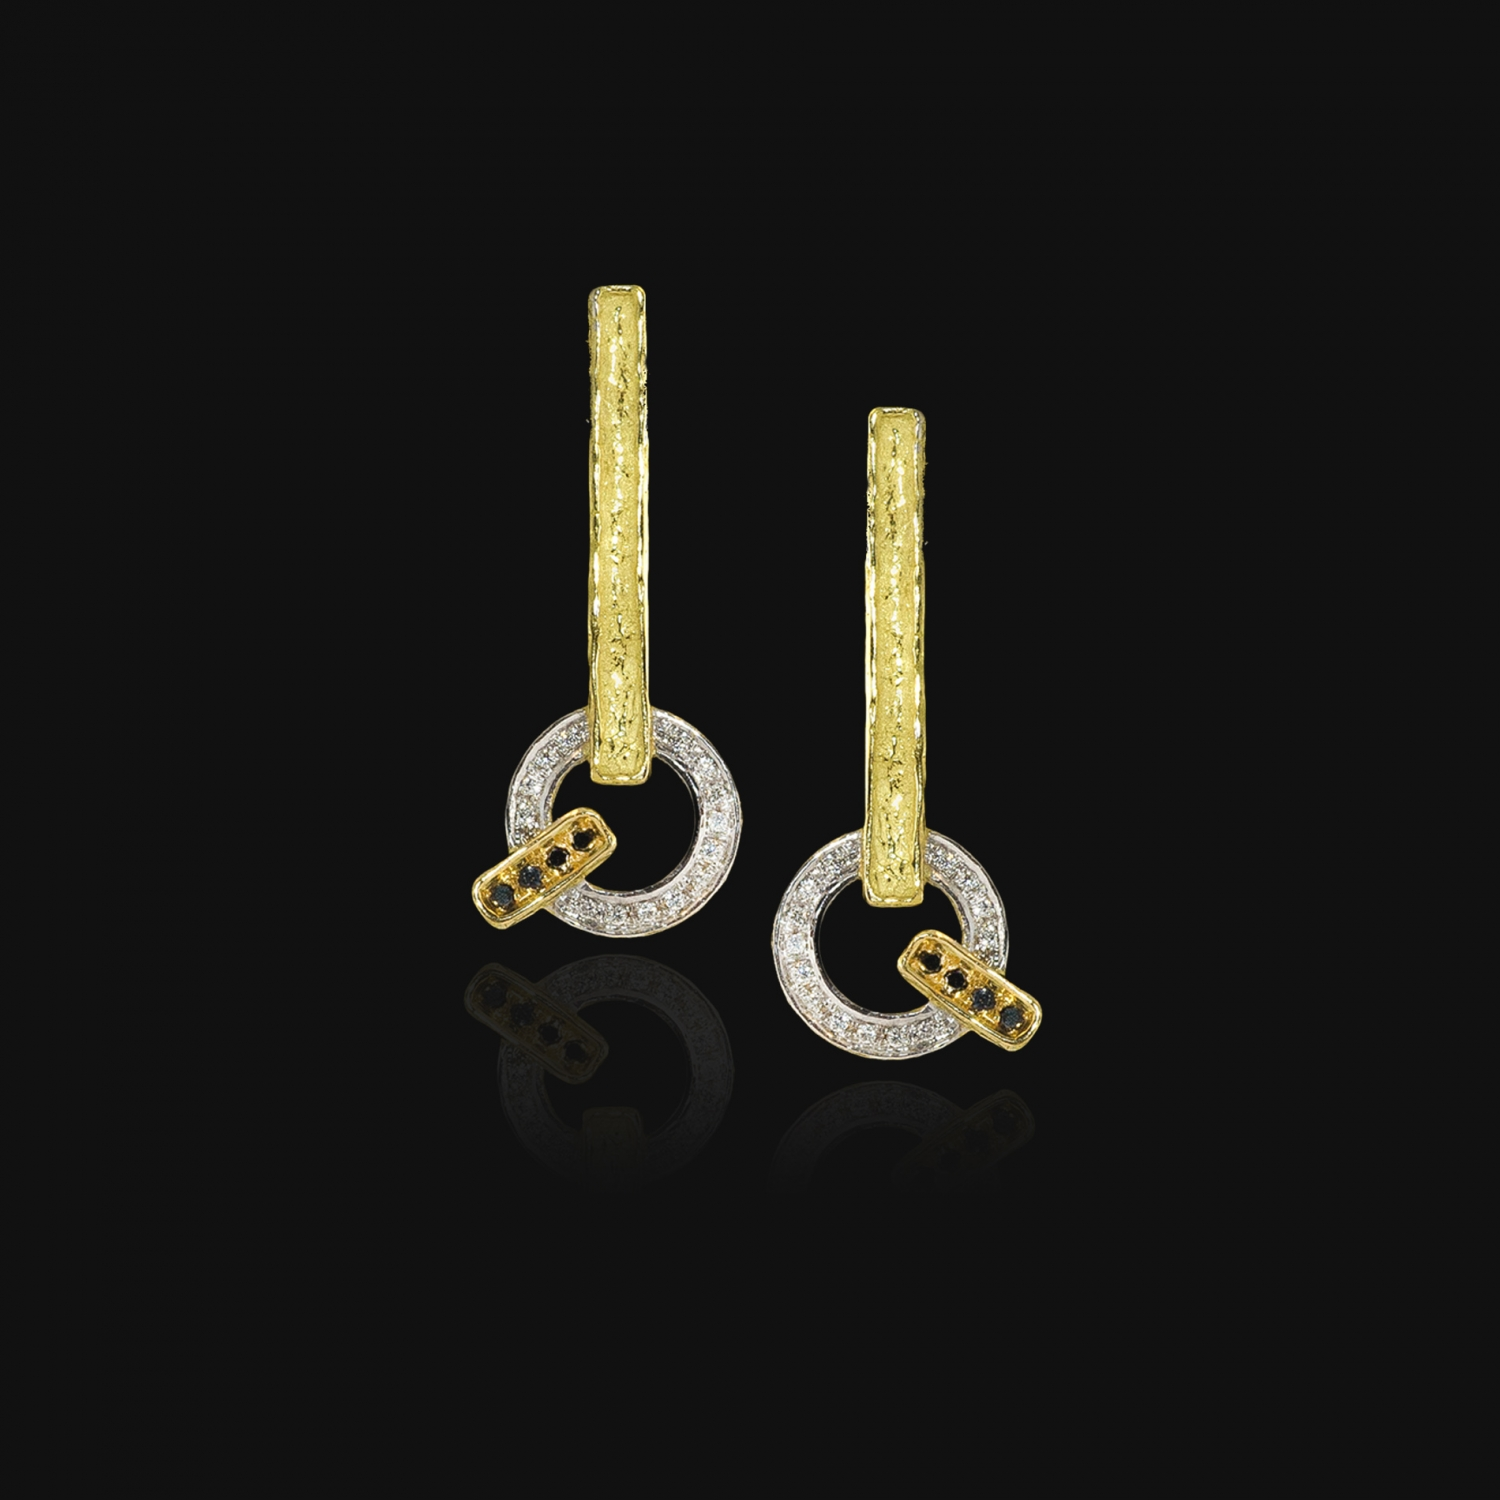 Anemoni Earrings, Corrado Sacchi